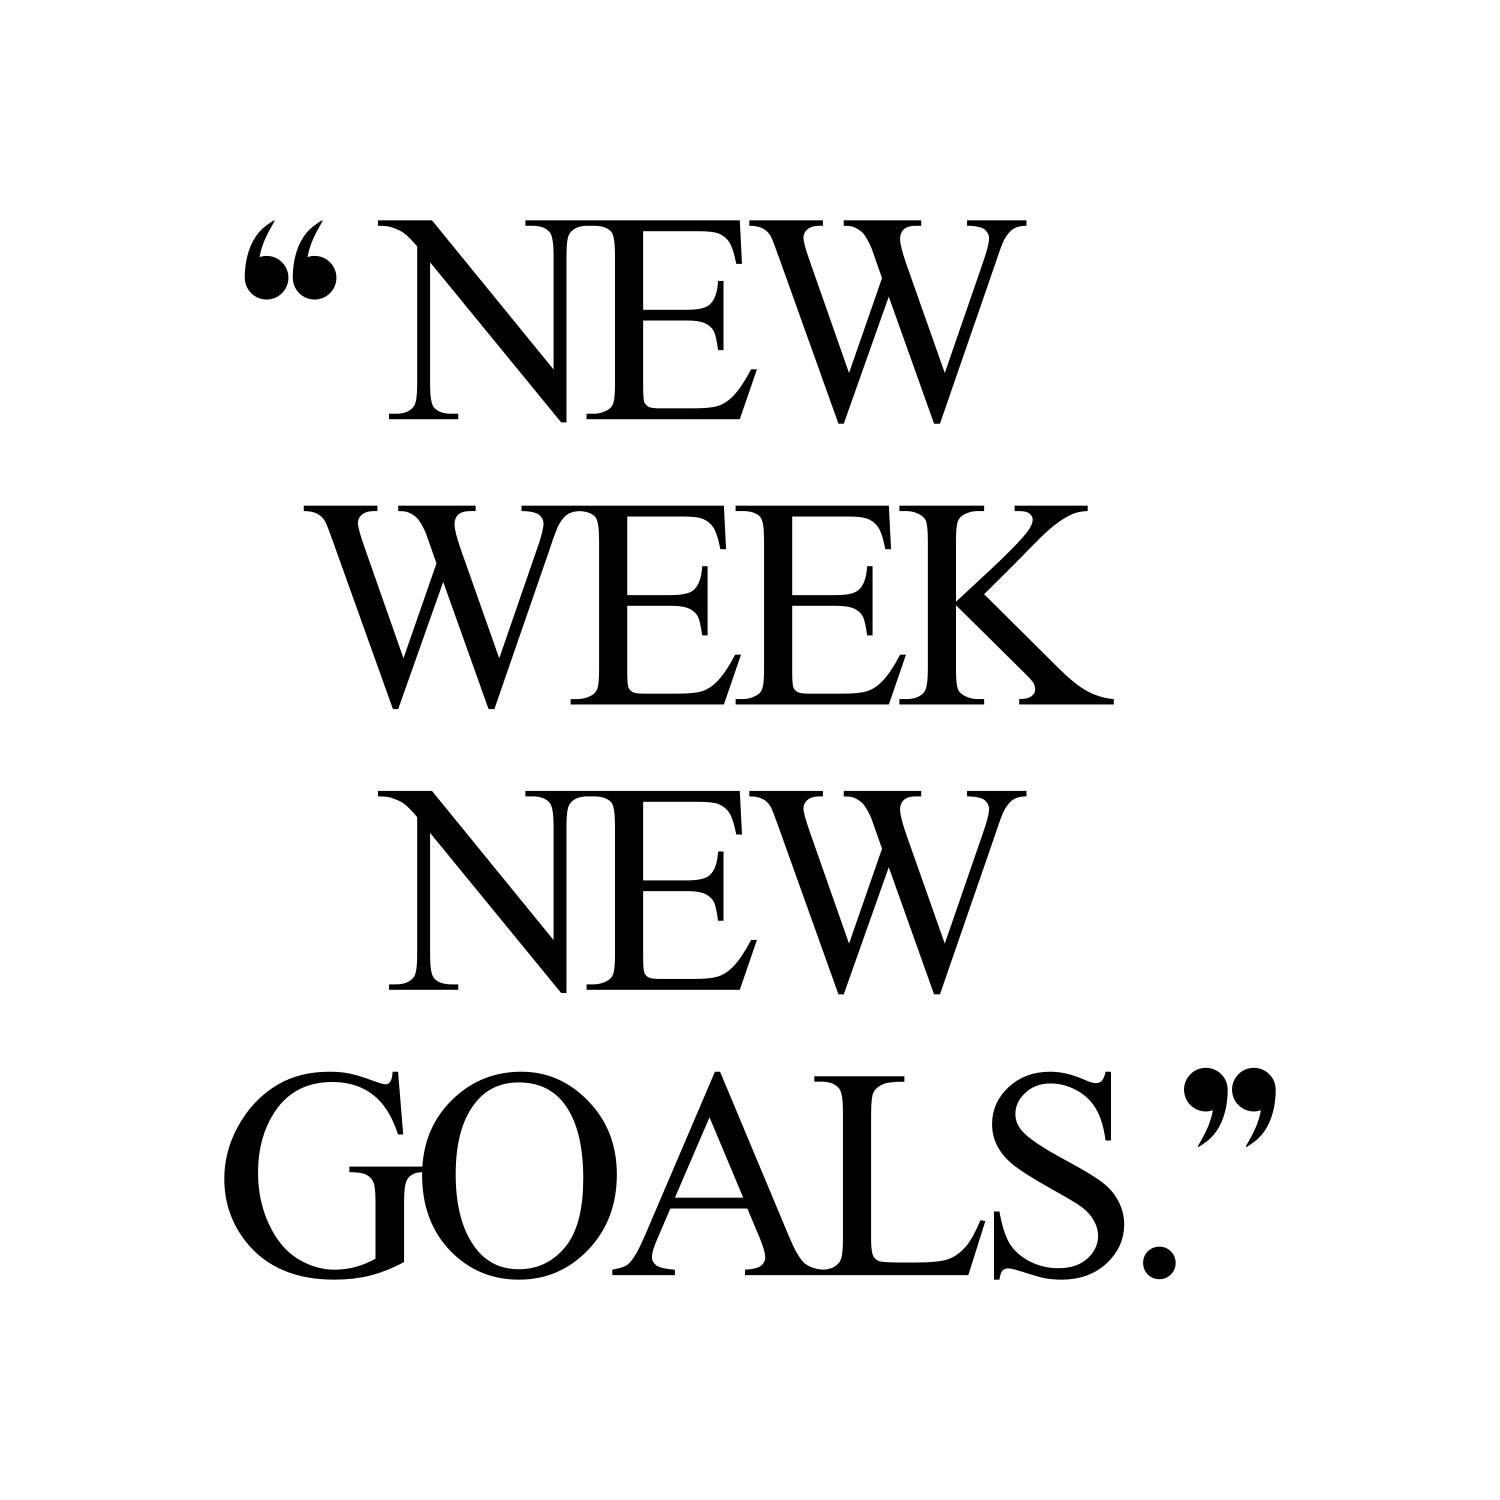 New week new goals! Browse our collection of inspirational health and weight loss quotes and get instant exercise and fitness motivation. Transform positive thoughts into positive actions and get fit, healthy and happy! https://www.spotebi.com/workout-motivation/new-week-new-goals/